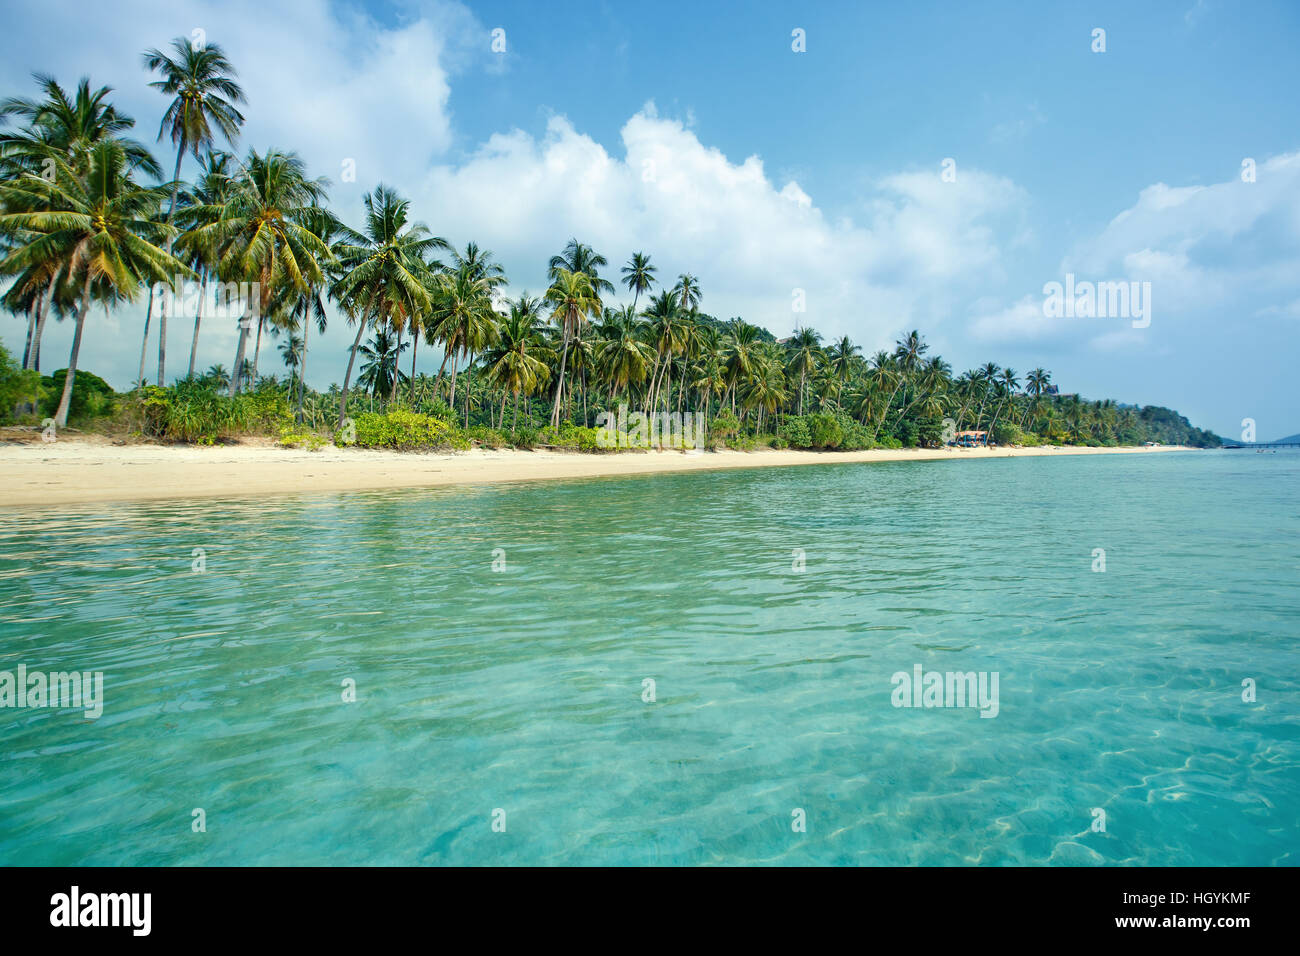 Tropical beach and coconut palms in Koh Samui, Thailand - Stock Image